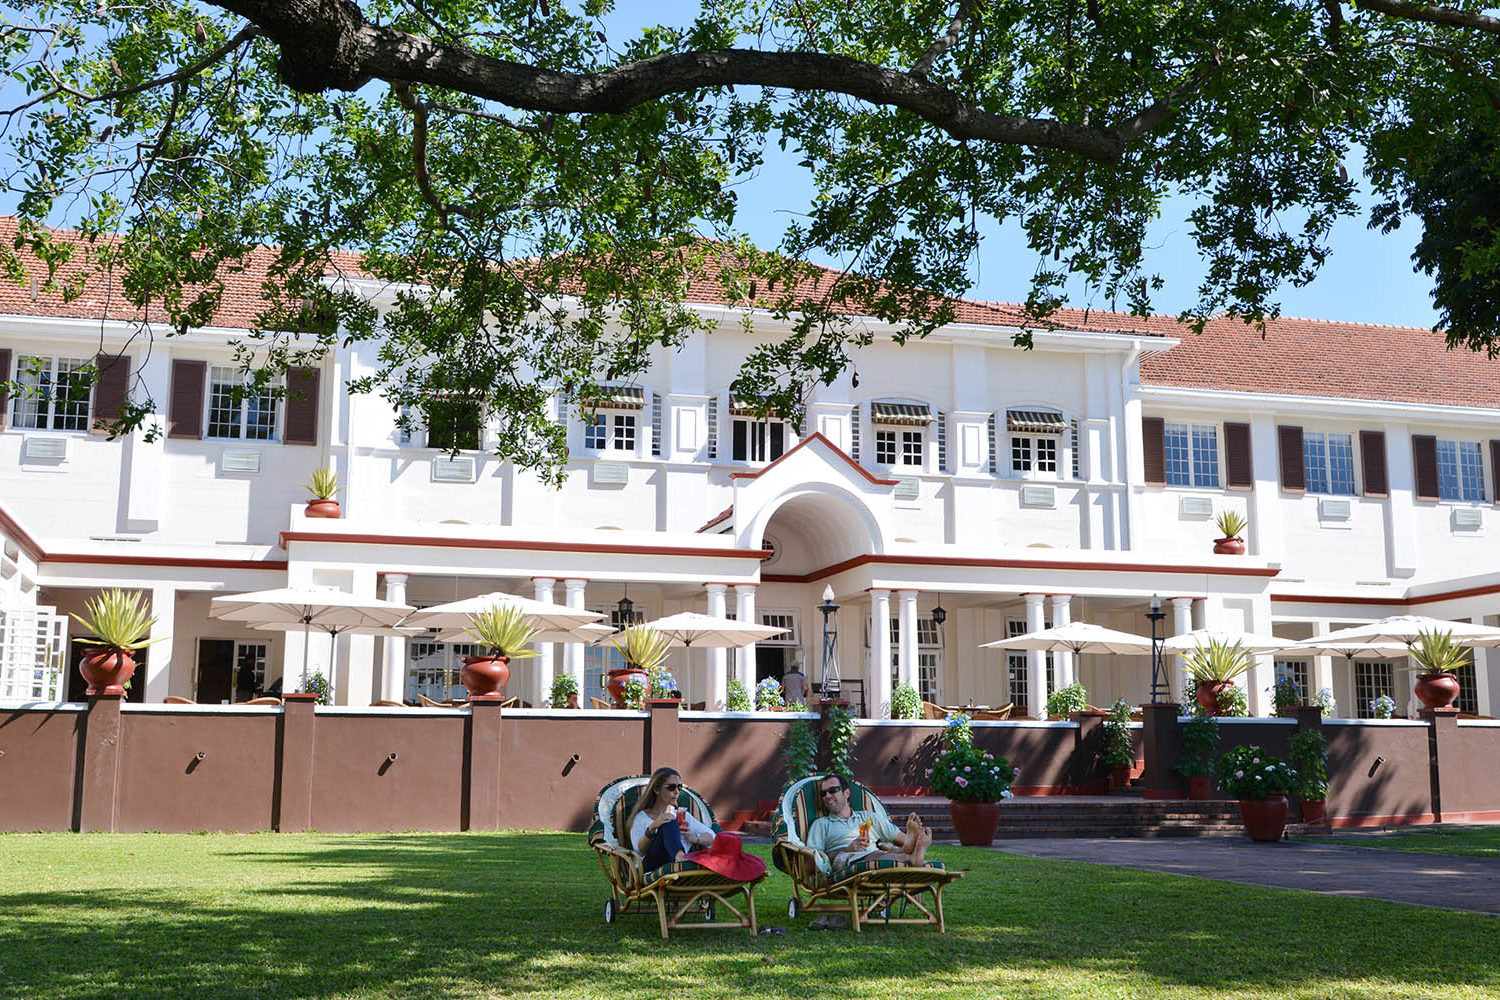 victoria falls hotel zimbabwe-accommodation-elegant-luxury-hotel-loungers